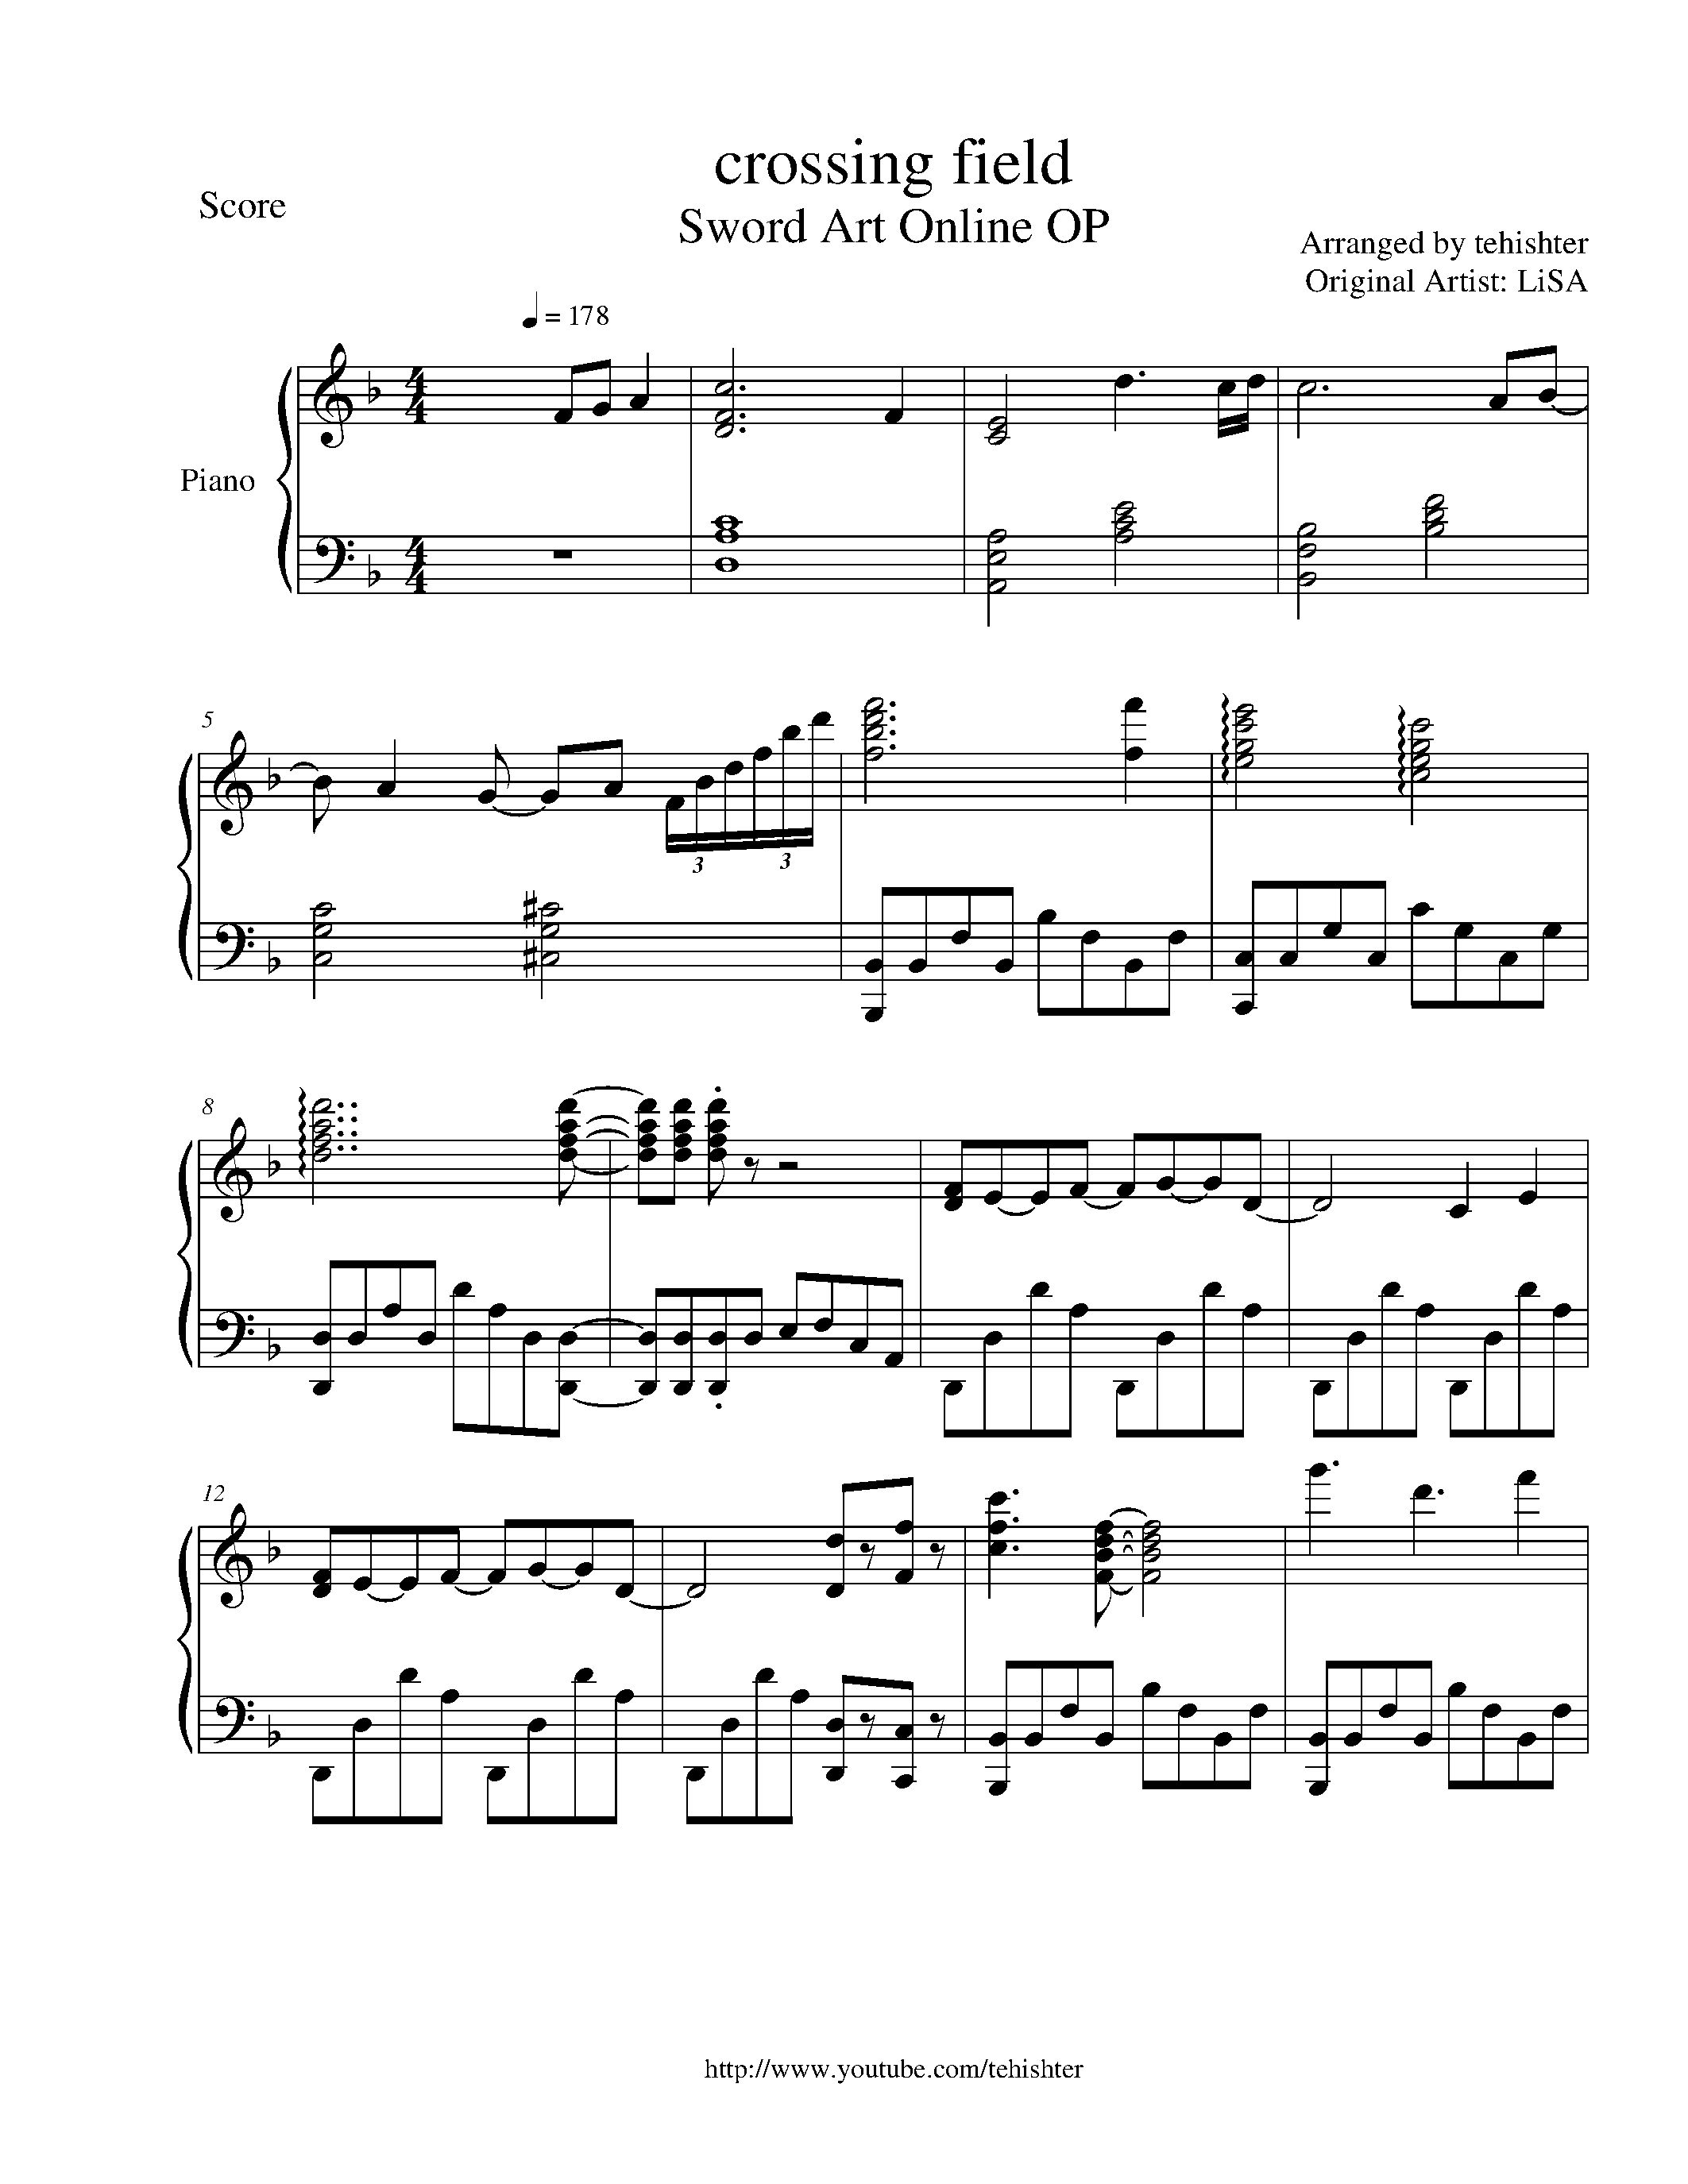 Sao crossing field piano sheet music 3 music pinterest sao crossing field piano sheet music baditri Image collections